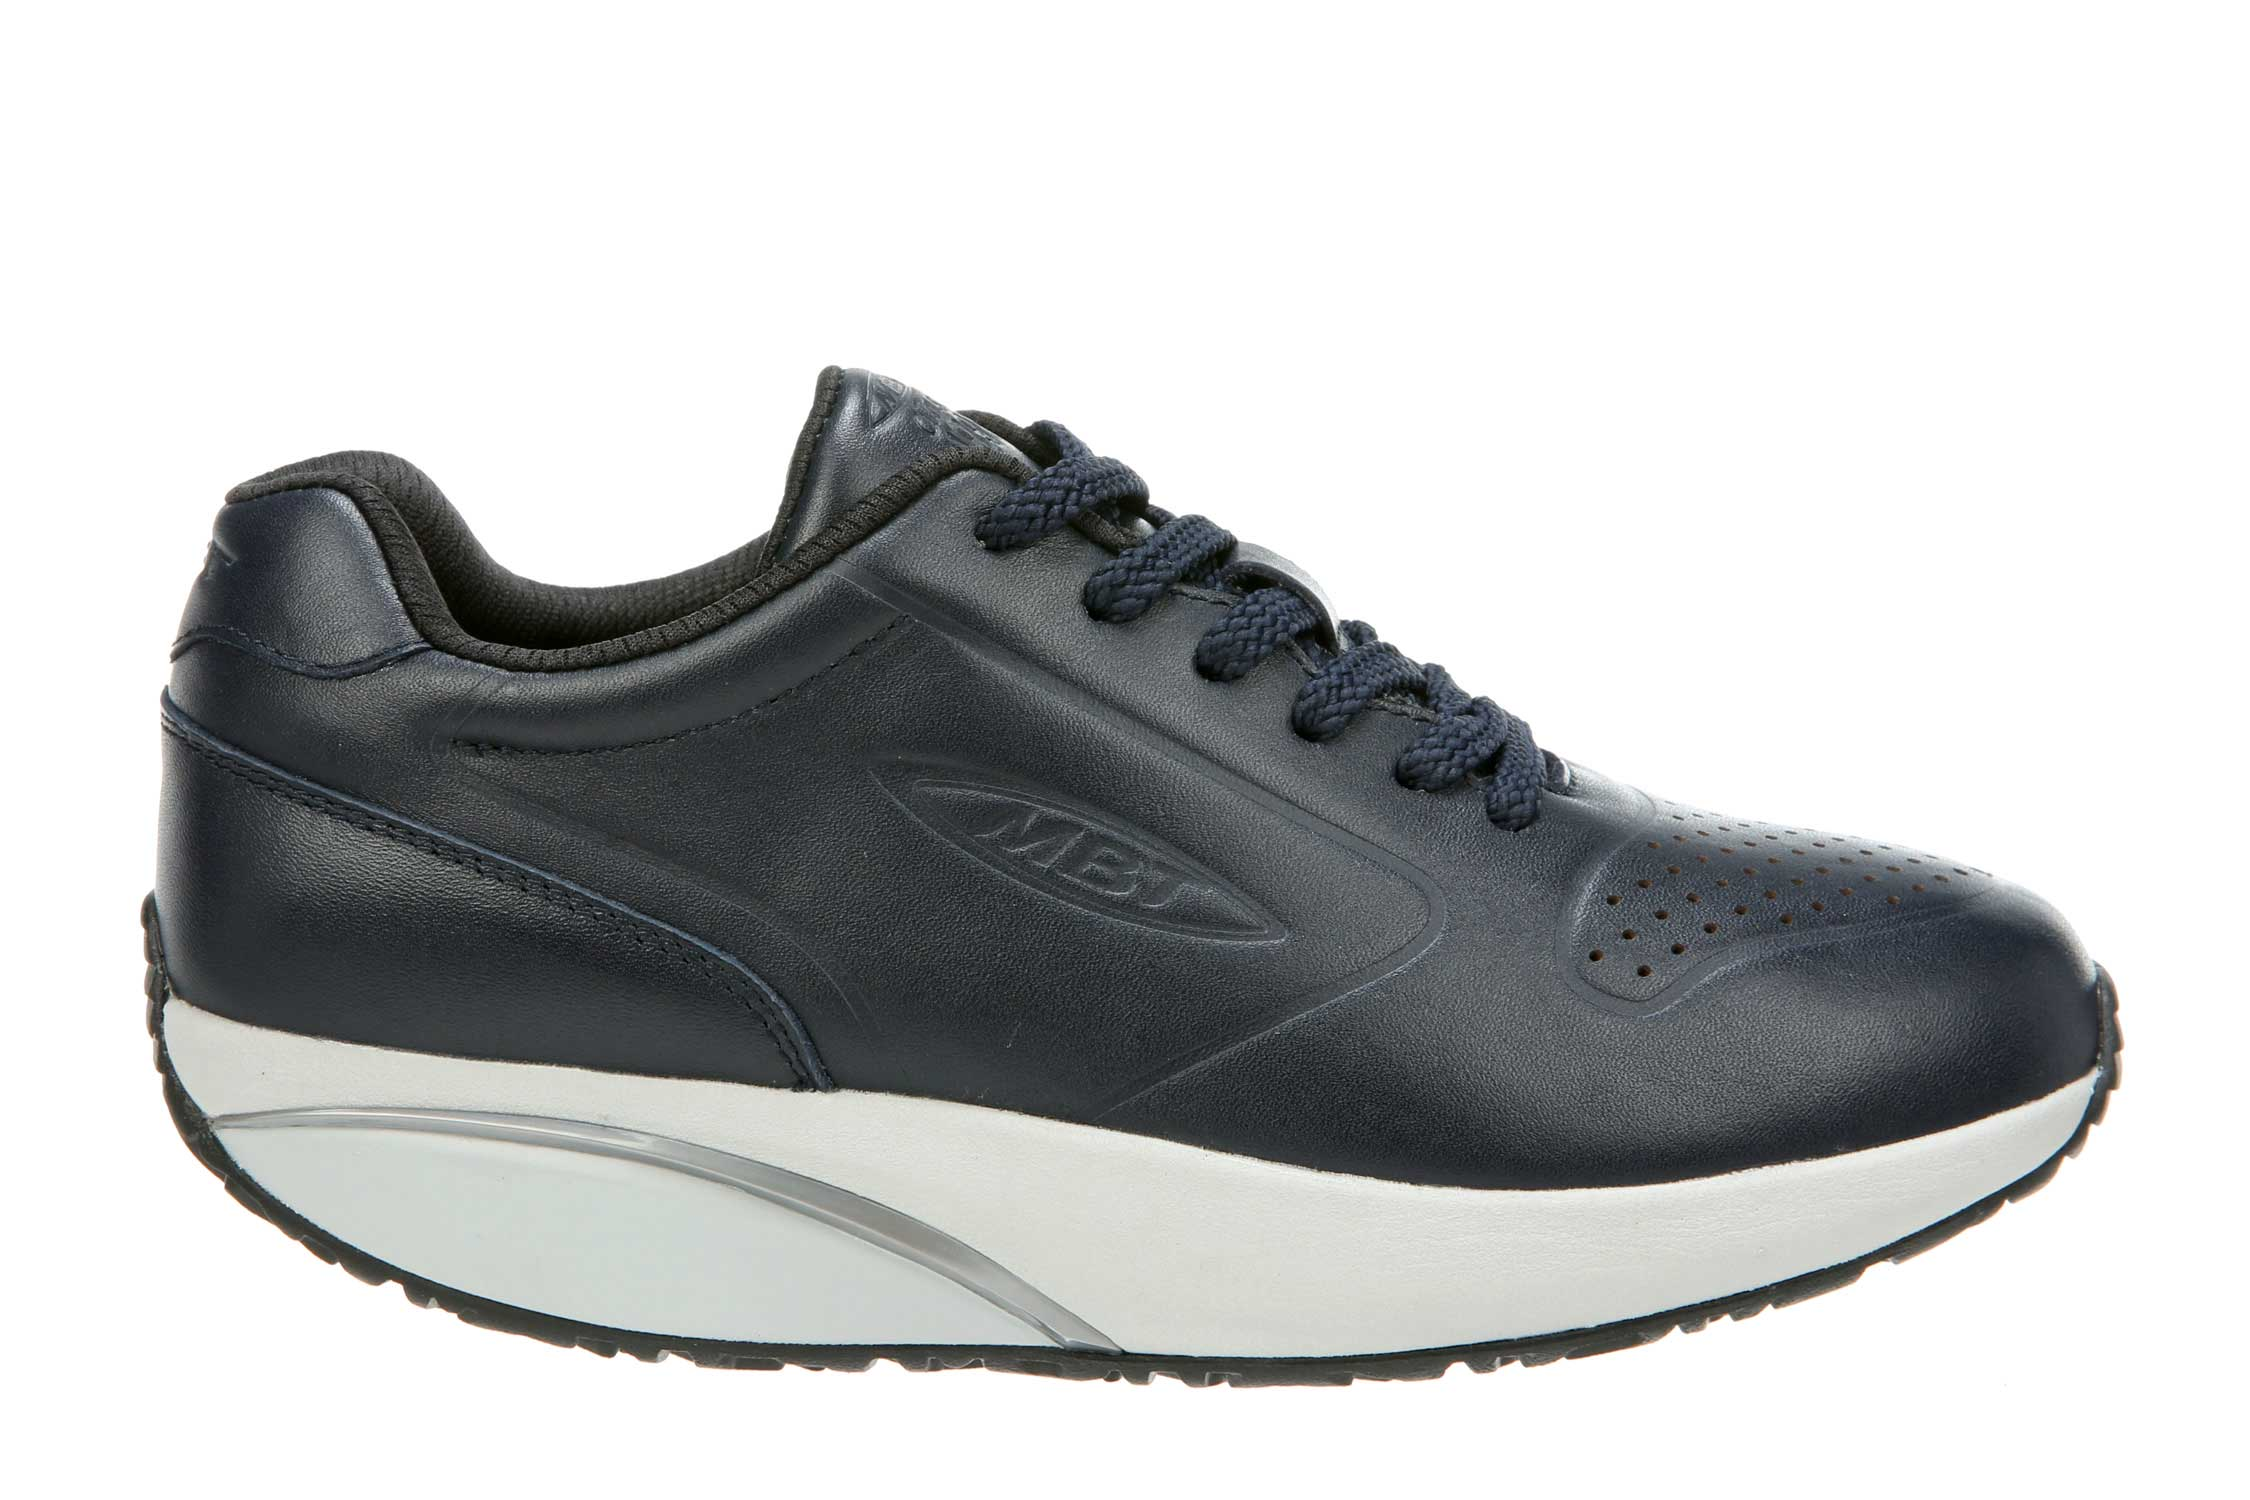 The MBT Shoes Women s MBT 1997 20th Anniversary Special Edition Athletic  Shoe - 700947 - Back by popular demand 2a55bed087